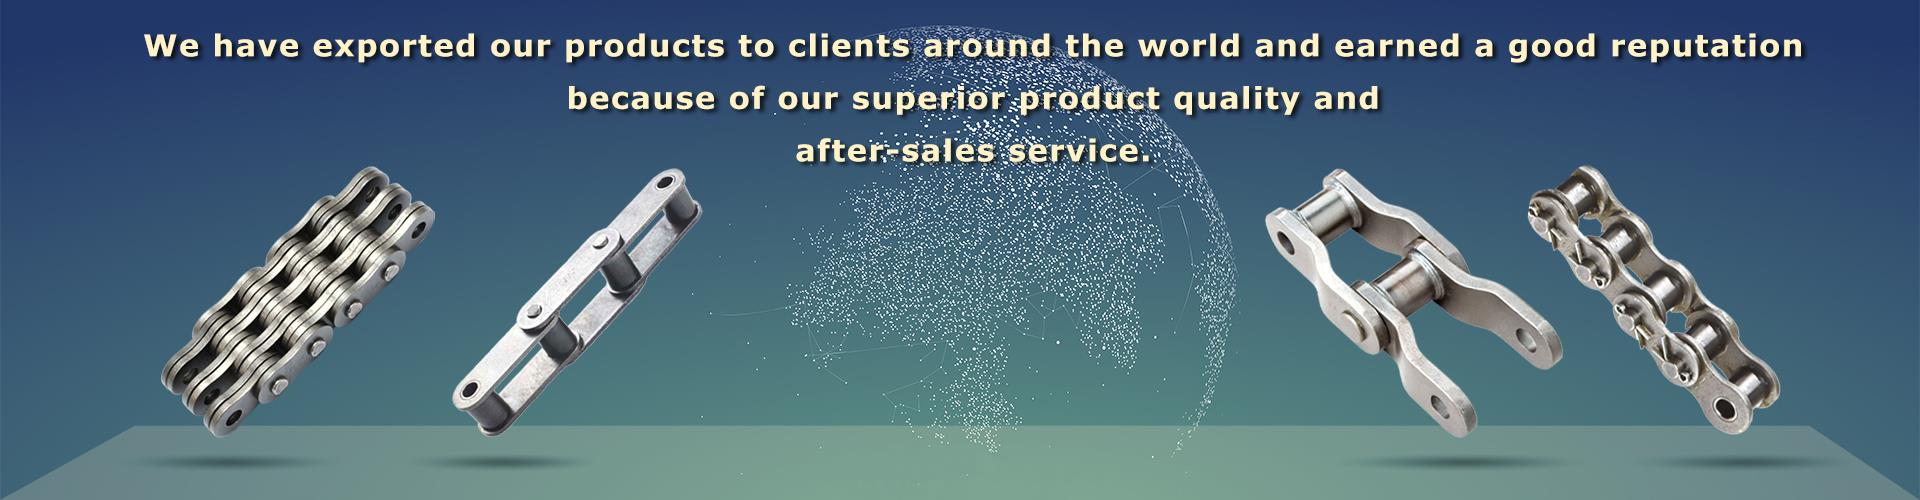 Customized  made in China - replacement parts -  in Lome Togo  Nonstandard Transmission Gear Helical Gear for Various Machinery with ce certificate top quality low price